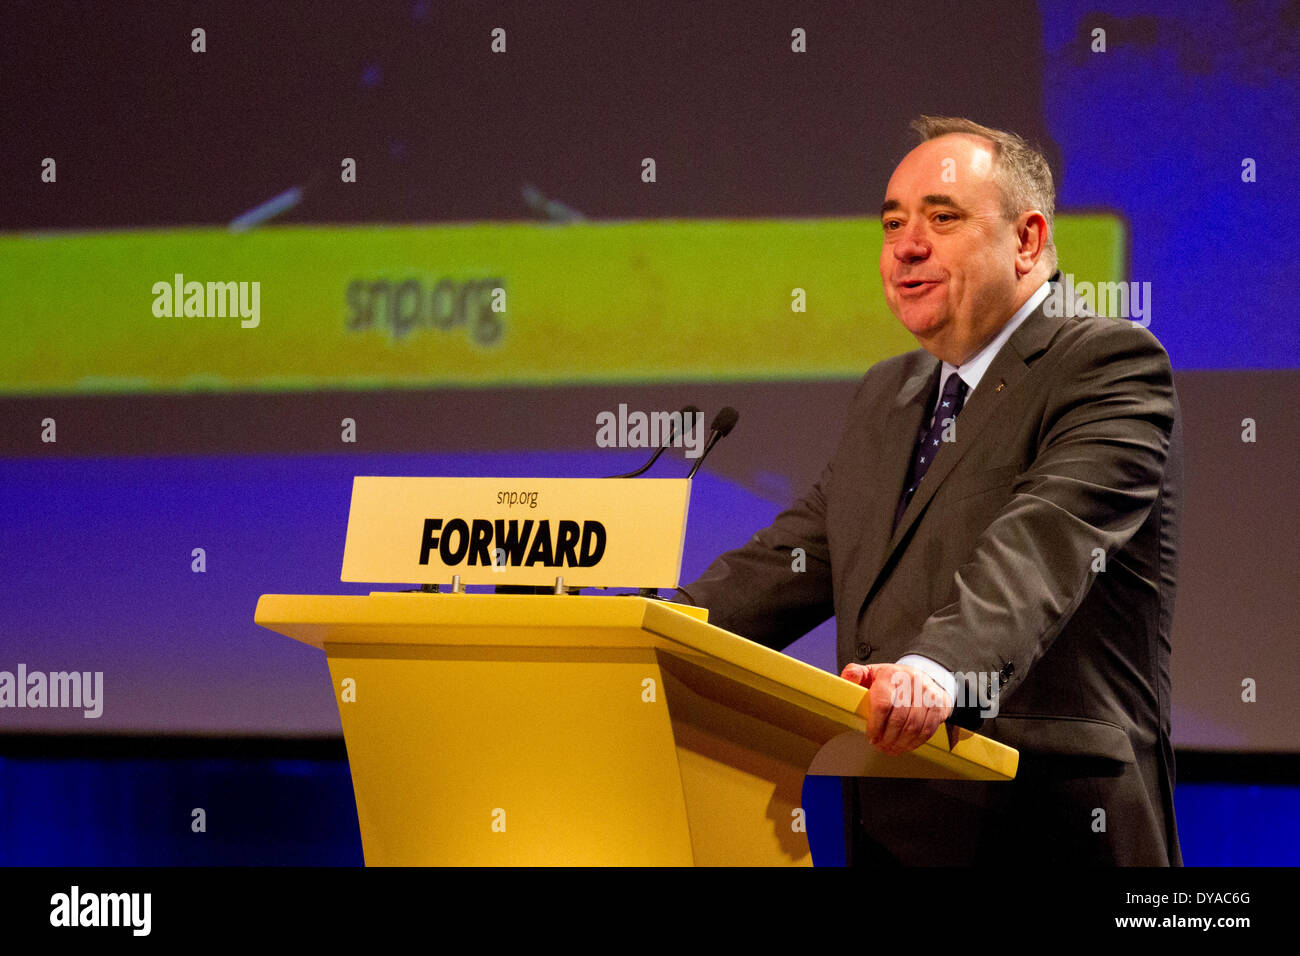 SNP political conference Aberdeen,  Scotland, UK Friday 11th April, 2014. Forward with Mr Alex Salmond MSP, Party Leader  speaking at the SNP Spring Conference at the Exhibition and Conference Centre (AECC). This is the last formal gathering before the referendum on September 18th campaigning for a Yes vote for Scotland's independence.  The conference, marking the 80th Anniversary of the formation of the party,  follows the publication of 'Scotland's Future, a detailed blueprint for an Scottish National Party Government to deliver using the new powers. - Stock Image